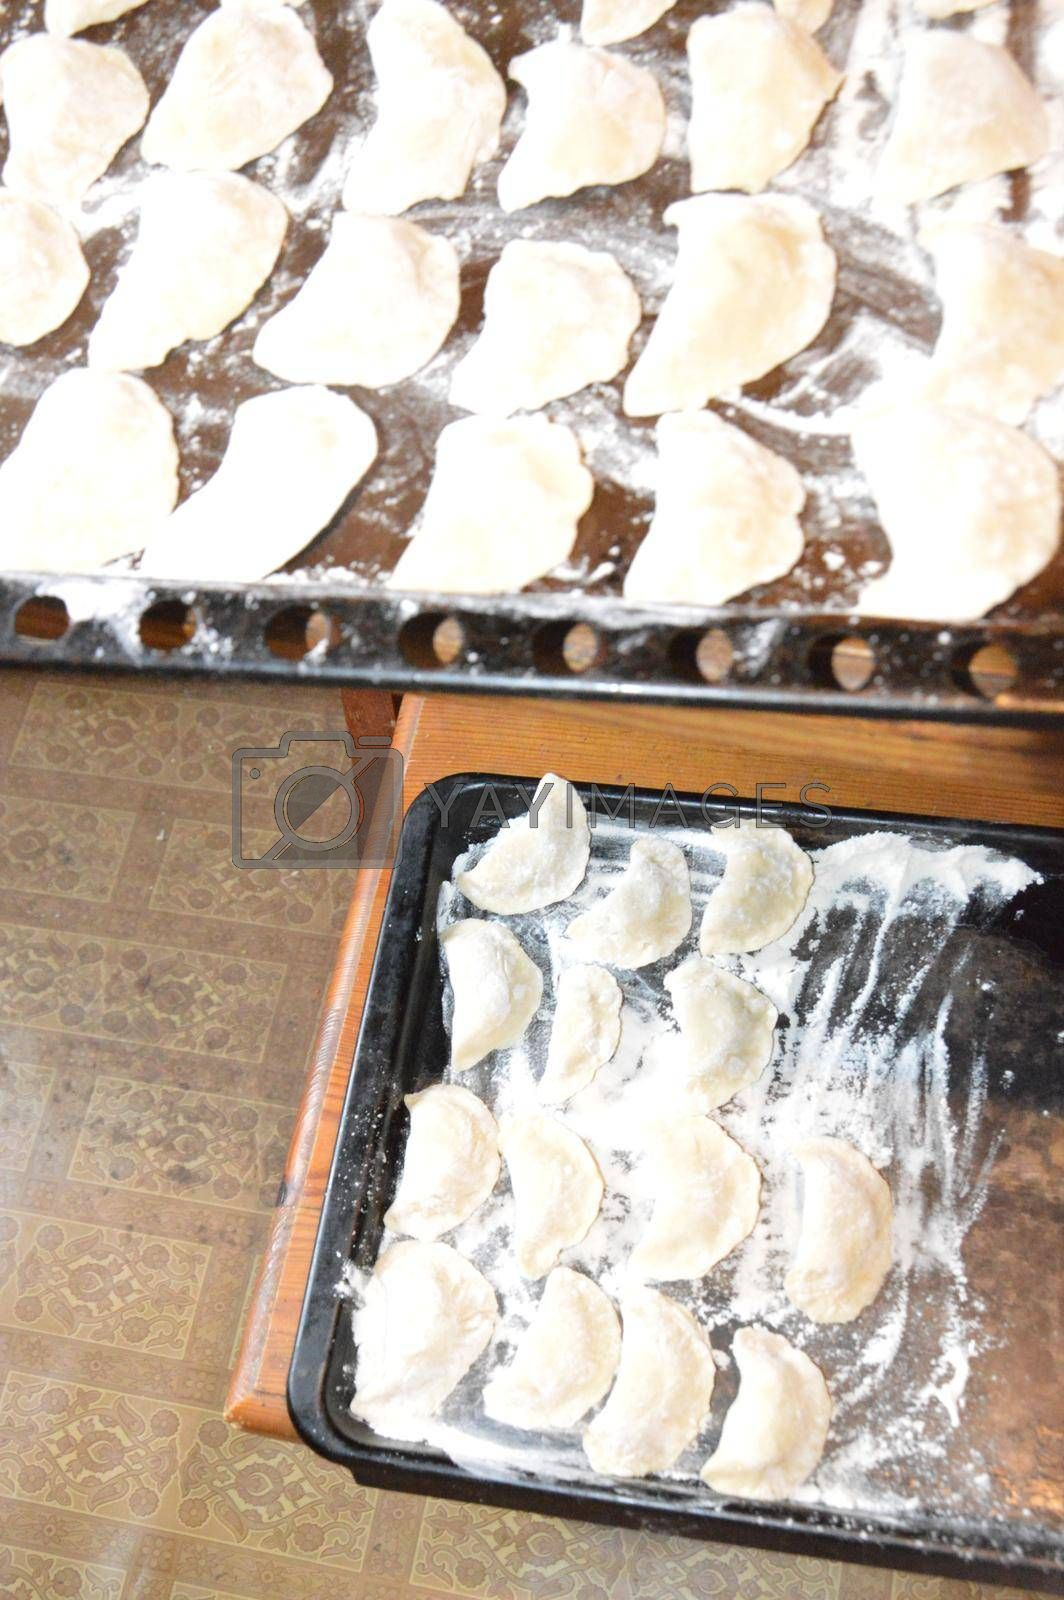 Handmade dumplings, molded by a hand